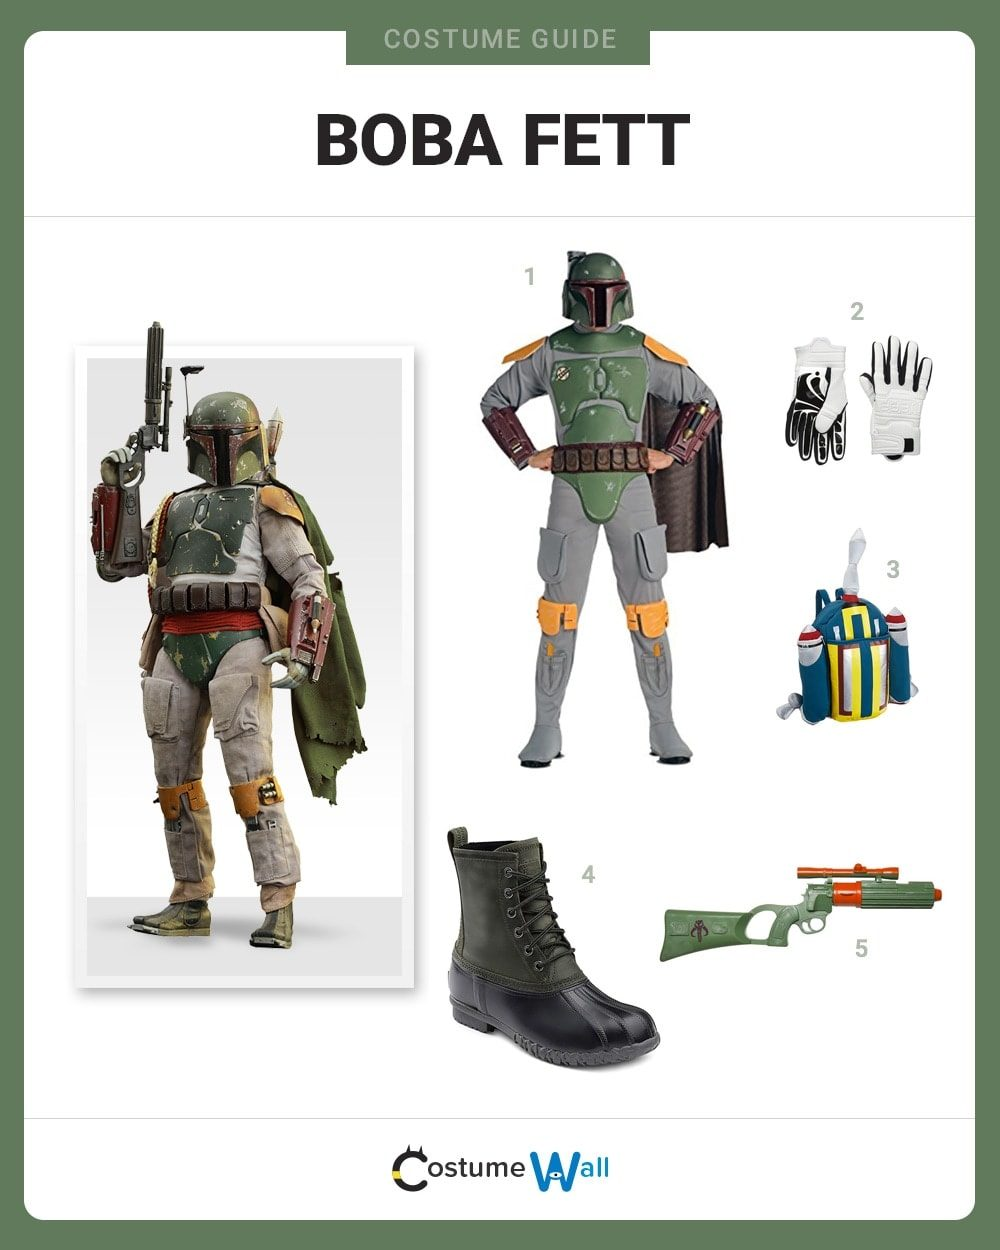 Boba Fett Costume Guide